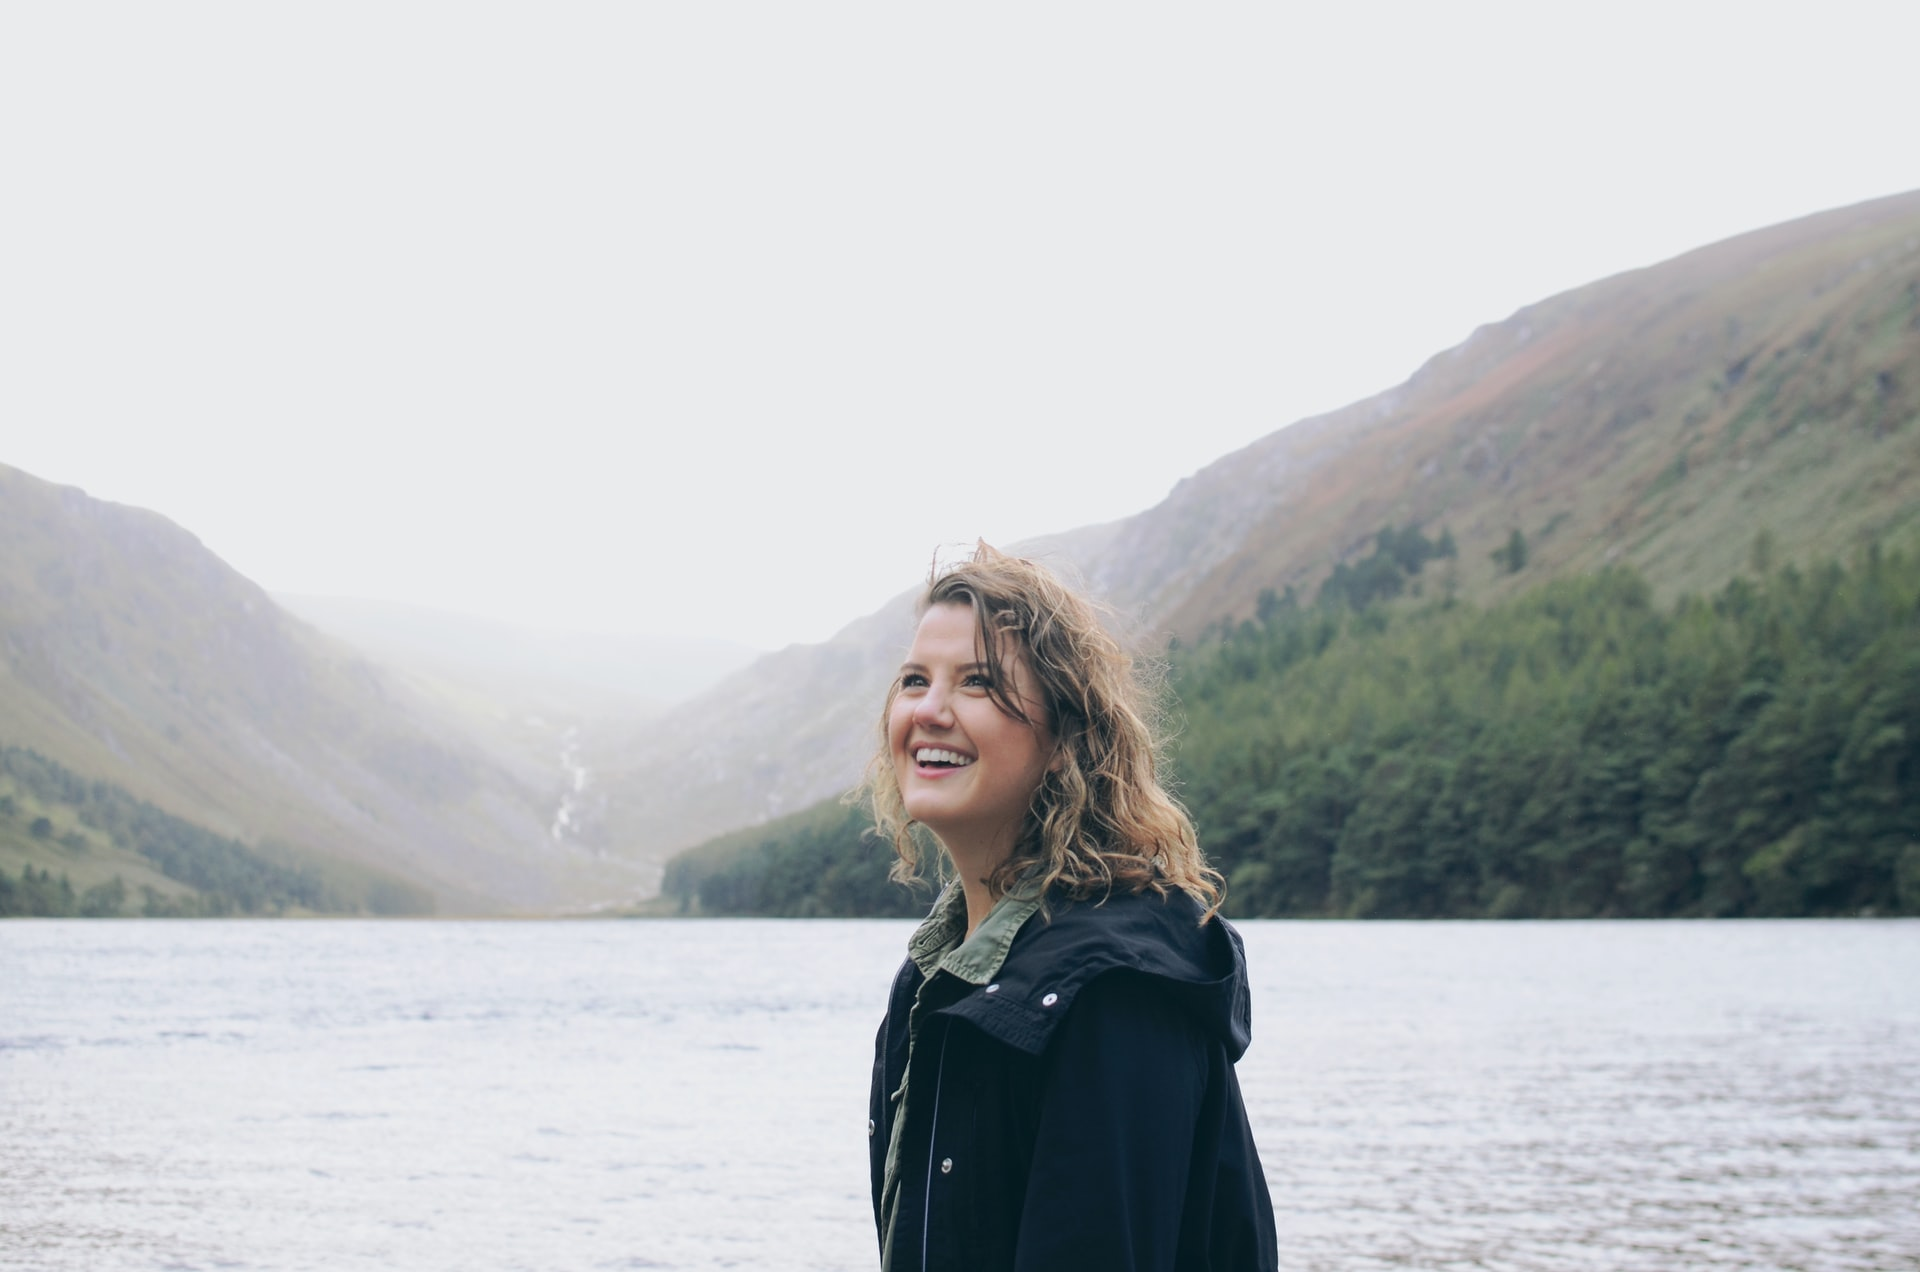 Woman smiling at Glendalough lakes